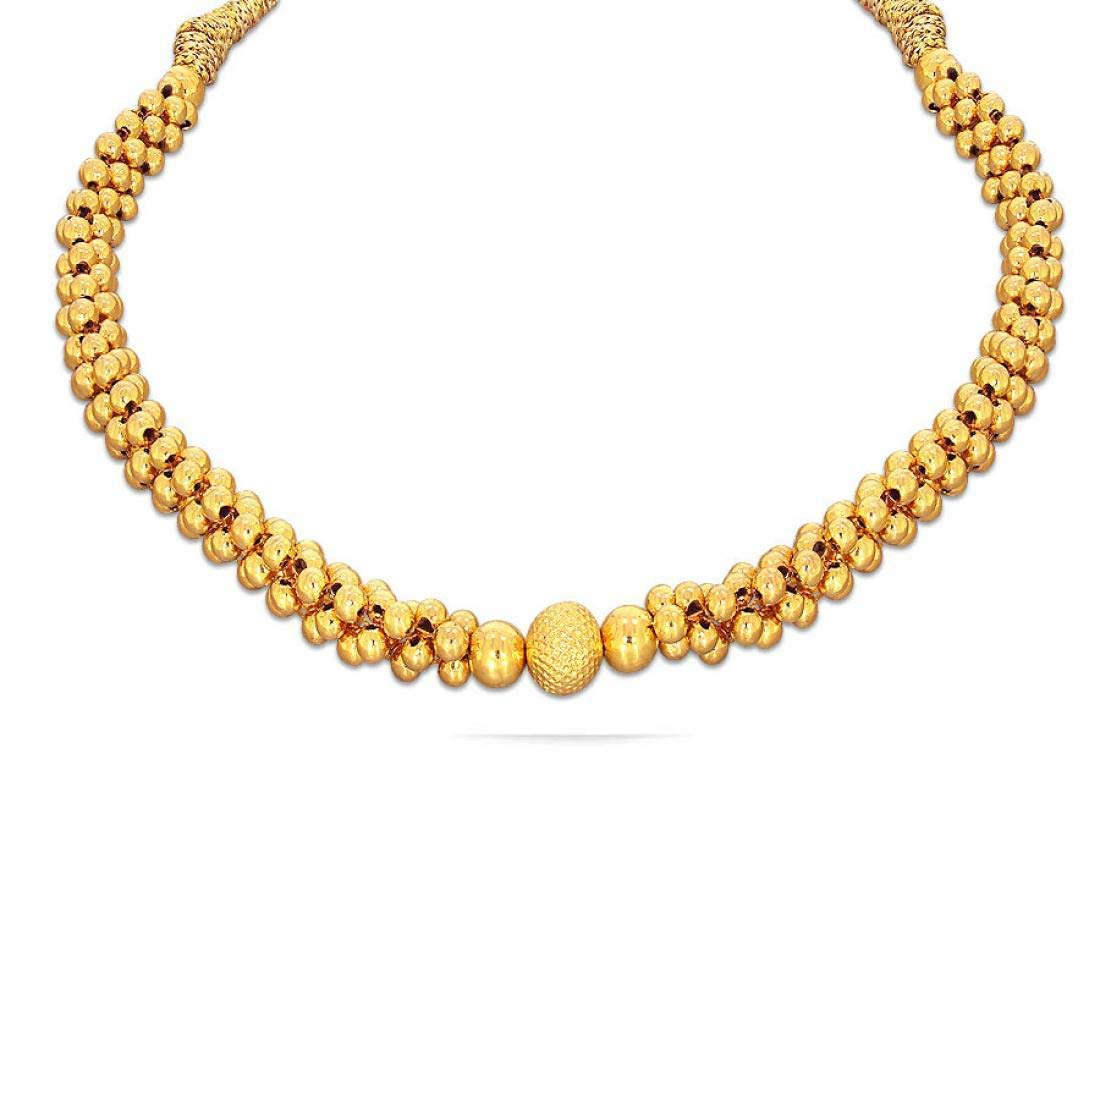 Candere By Kalyan Jewellers 22KT Yellow Gold Choker Necklace for Women